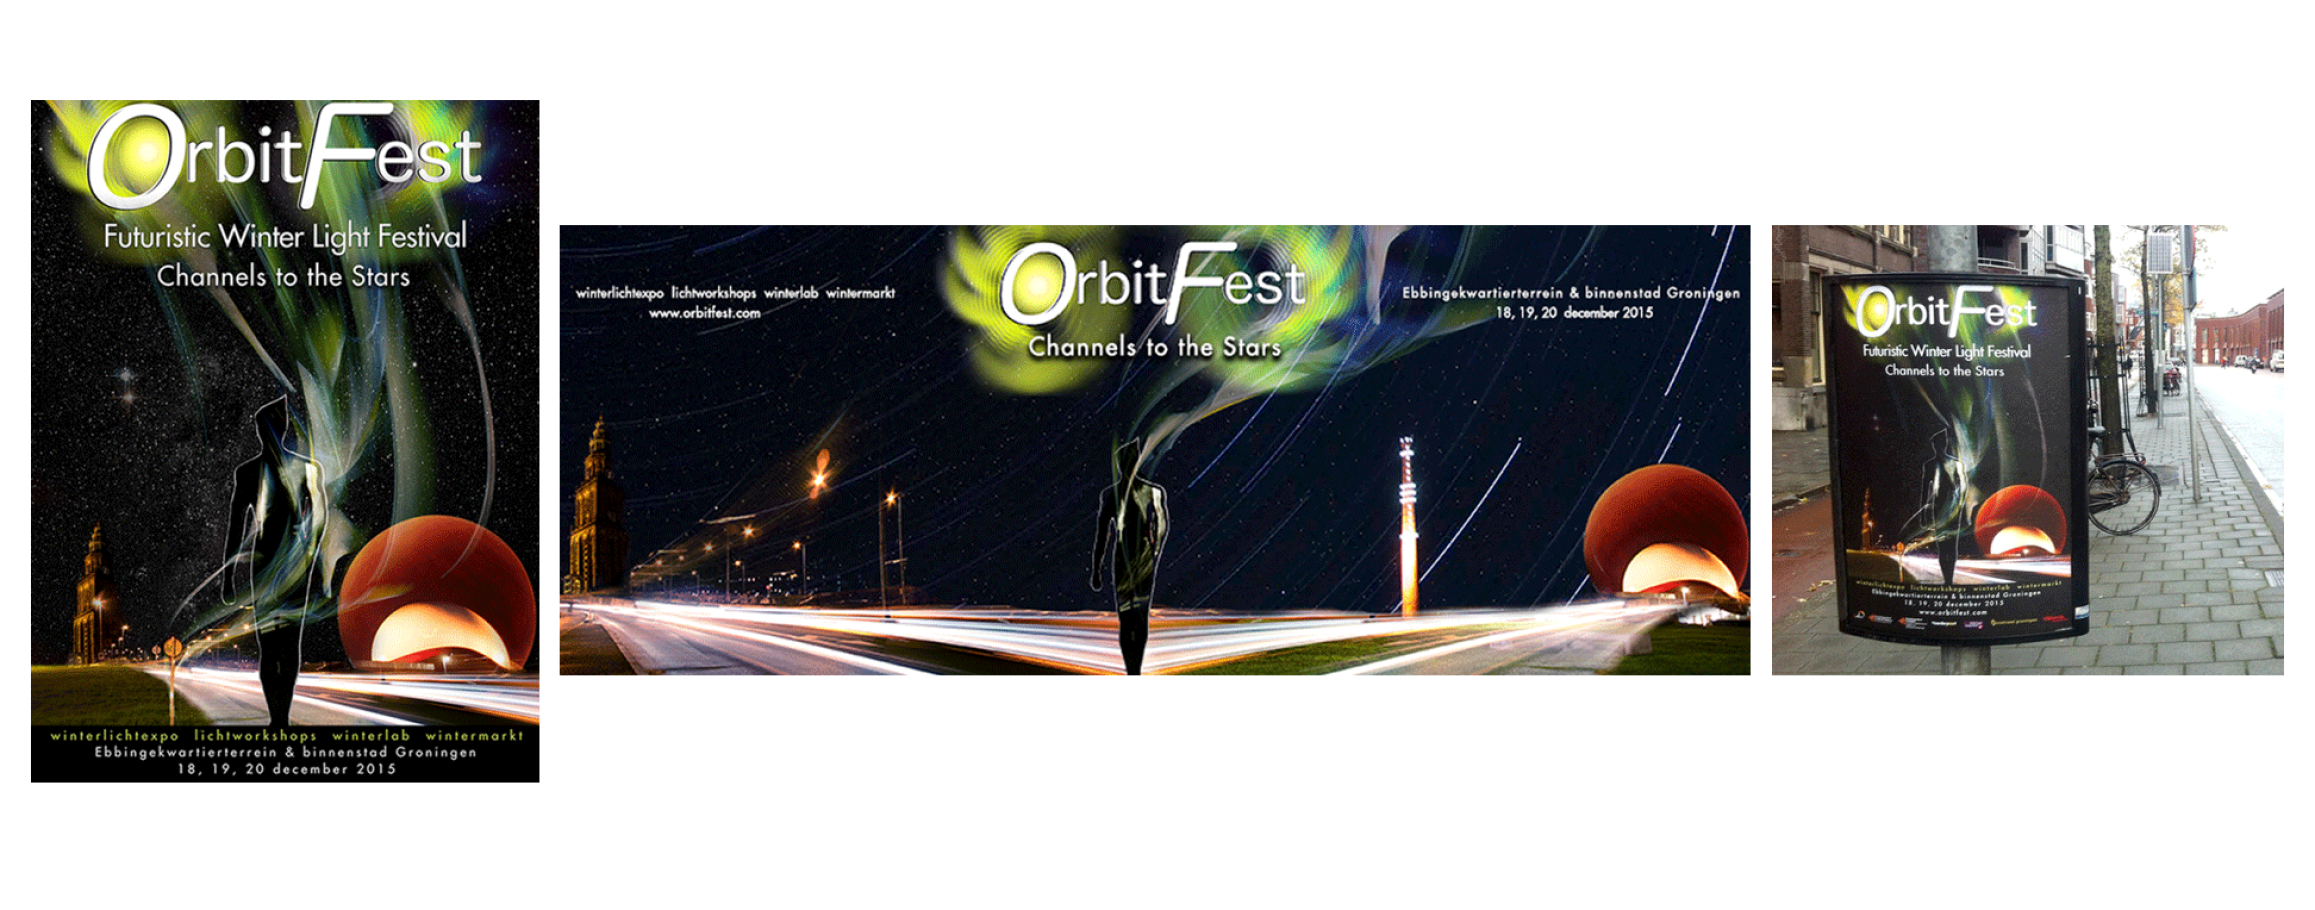 Orbitfest - Poster art and promotional materials -  www.orbitfest.com